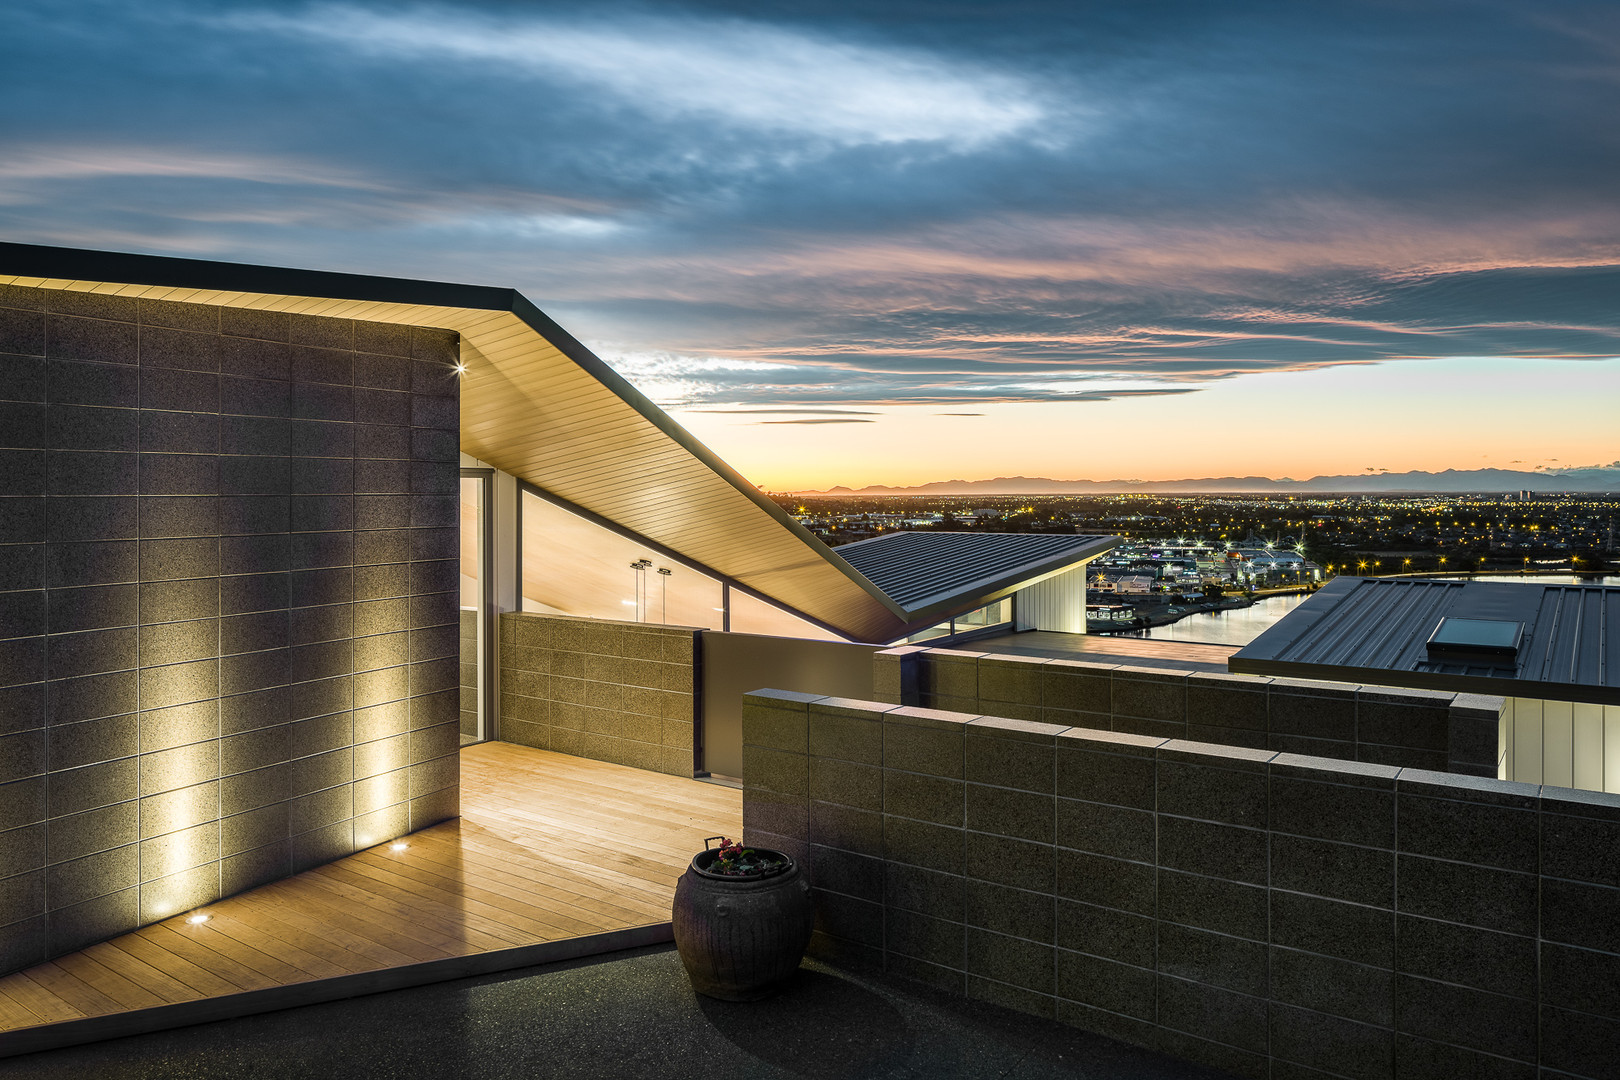 Redcliffs architectural home with stunning view